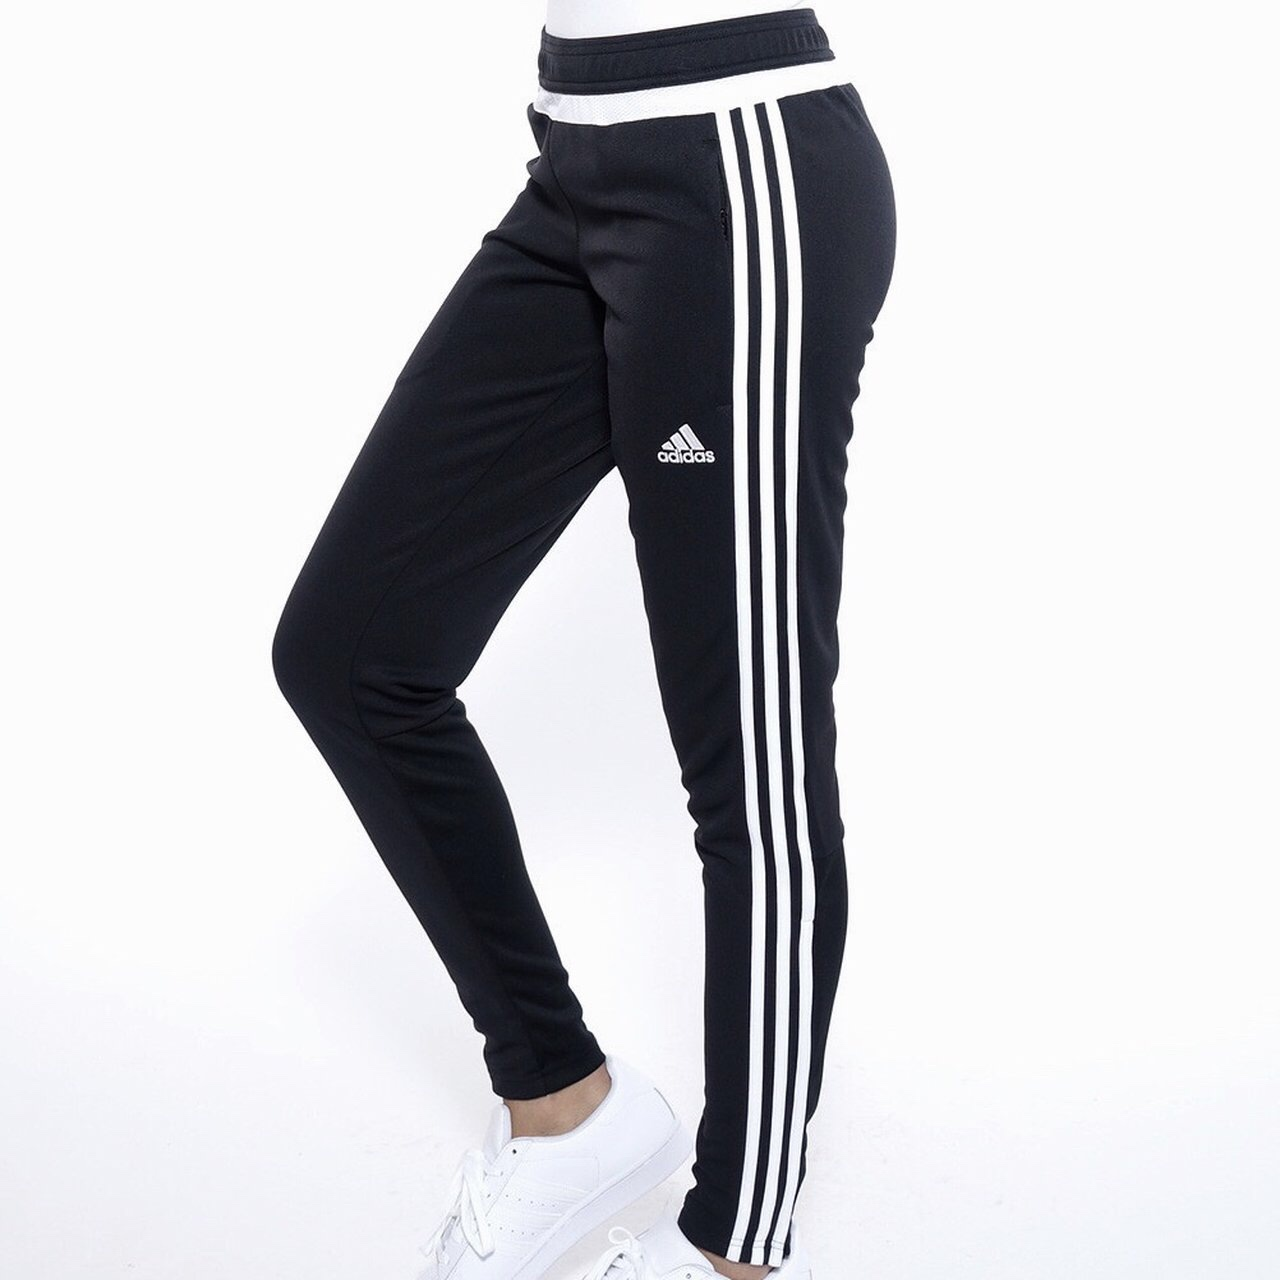 70eebdea Adidas Tiro 15 Training Pants Youth Large SO it fits... - Depop